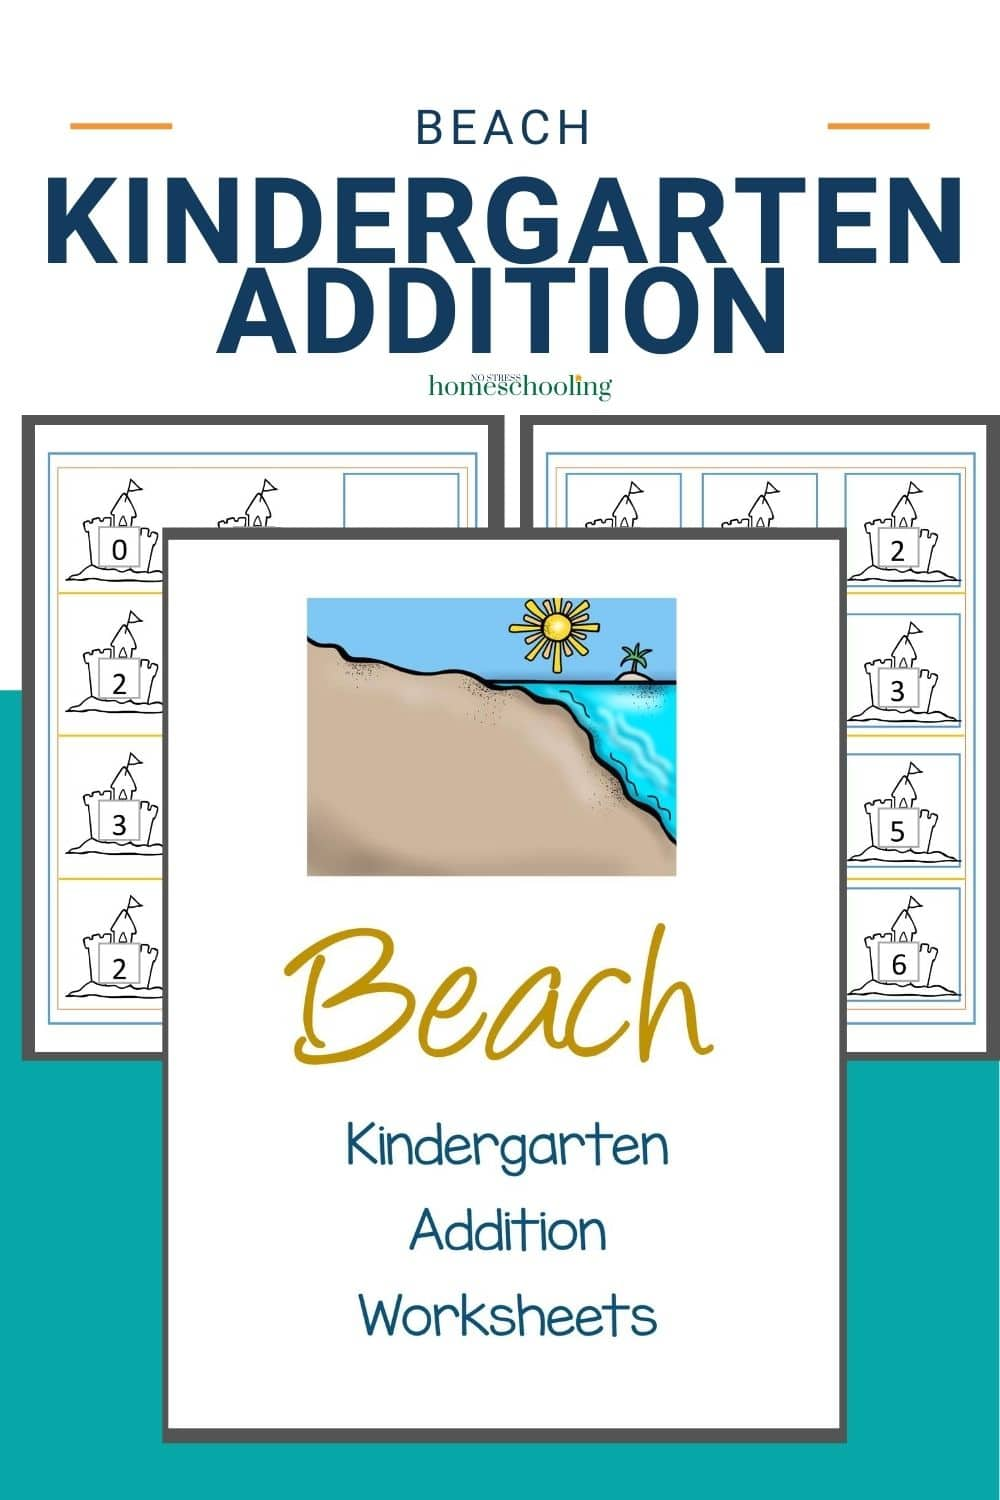 pic showing beach addition worksheets for kindergarten